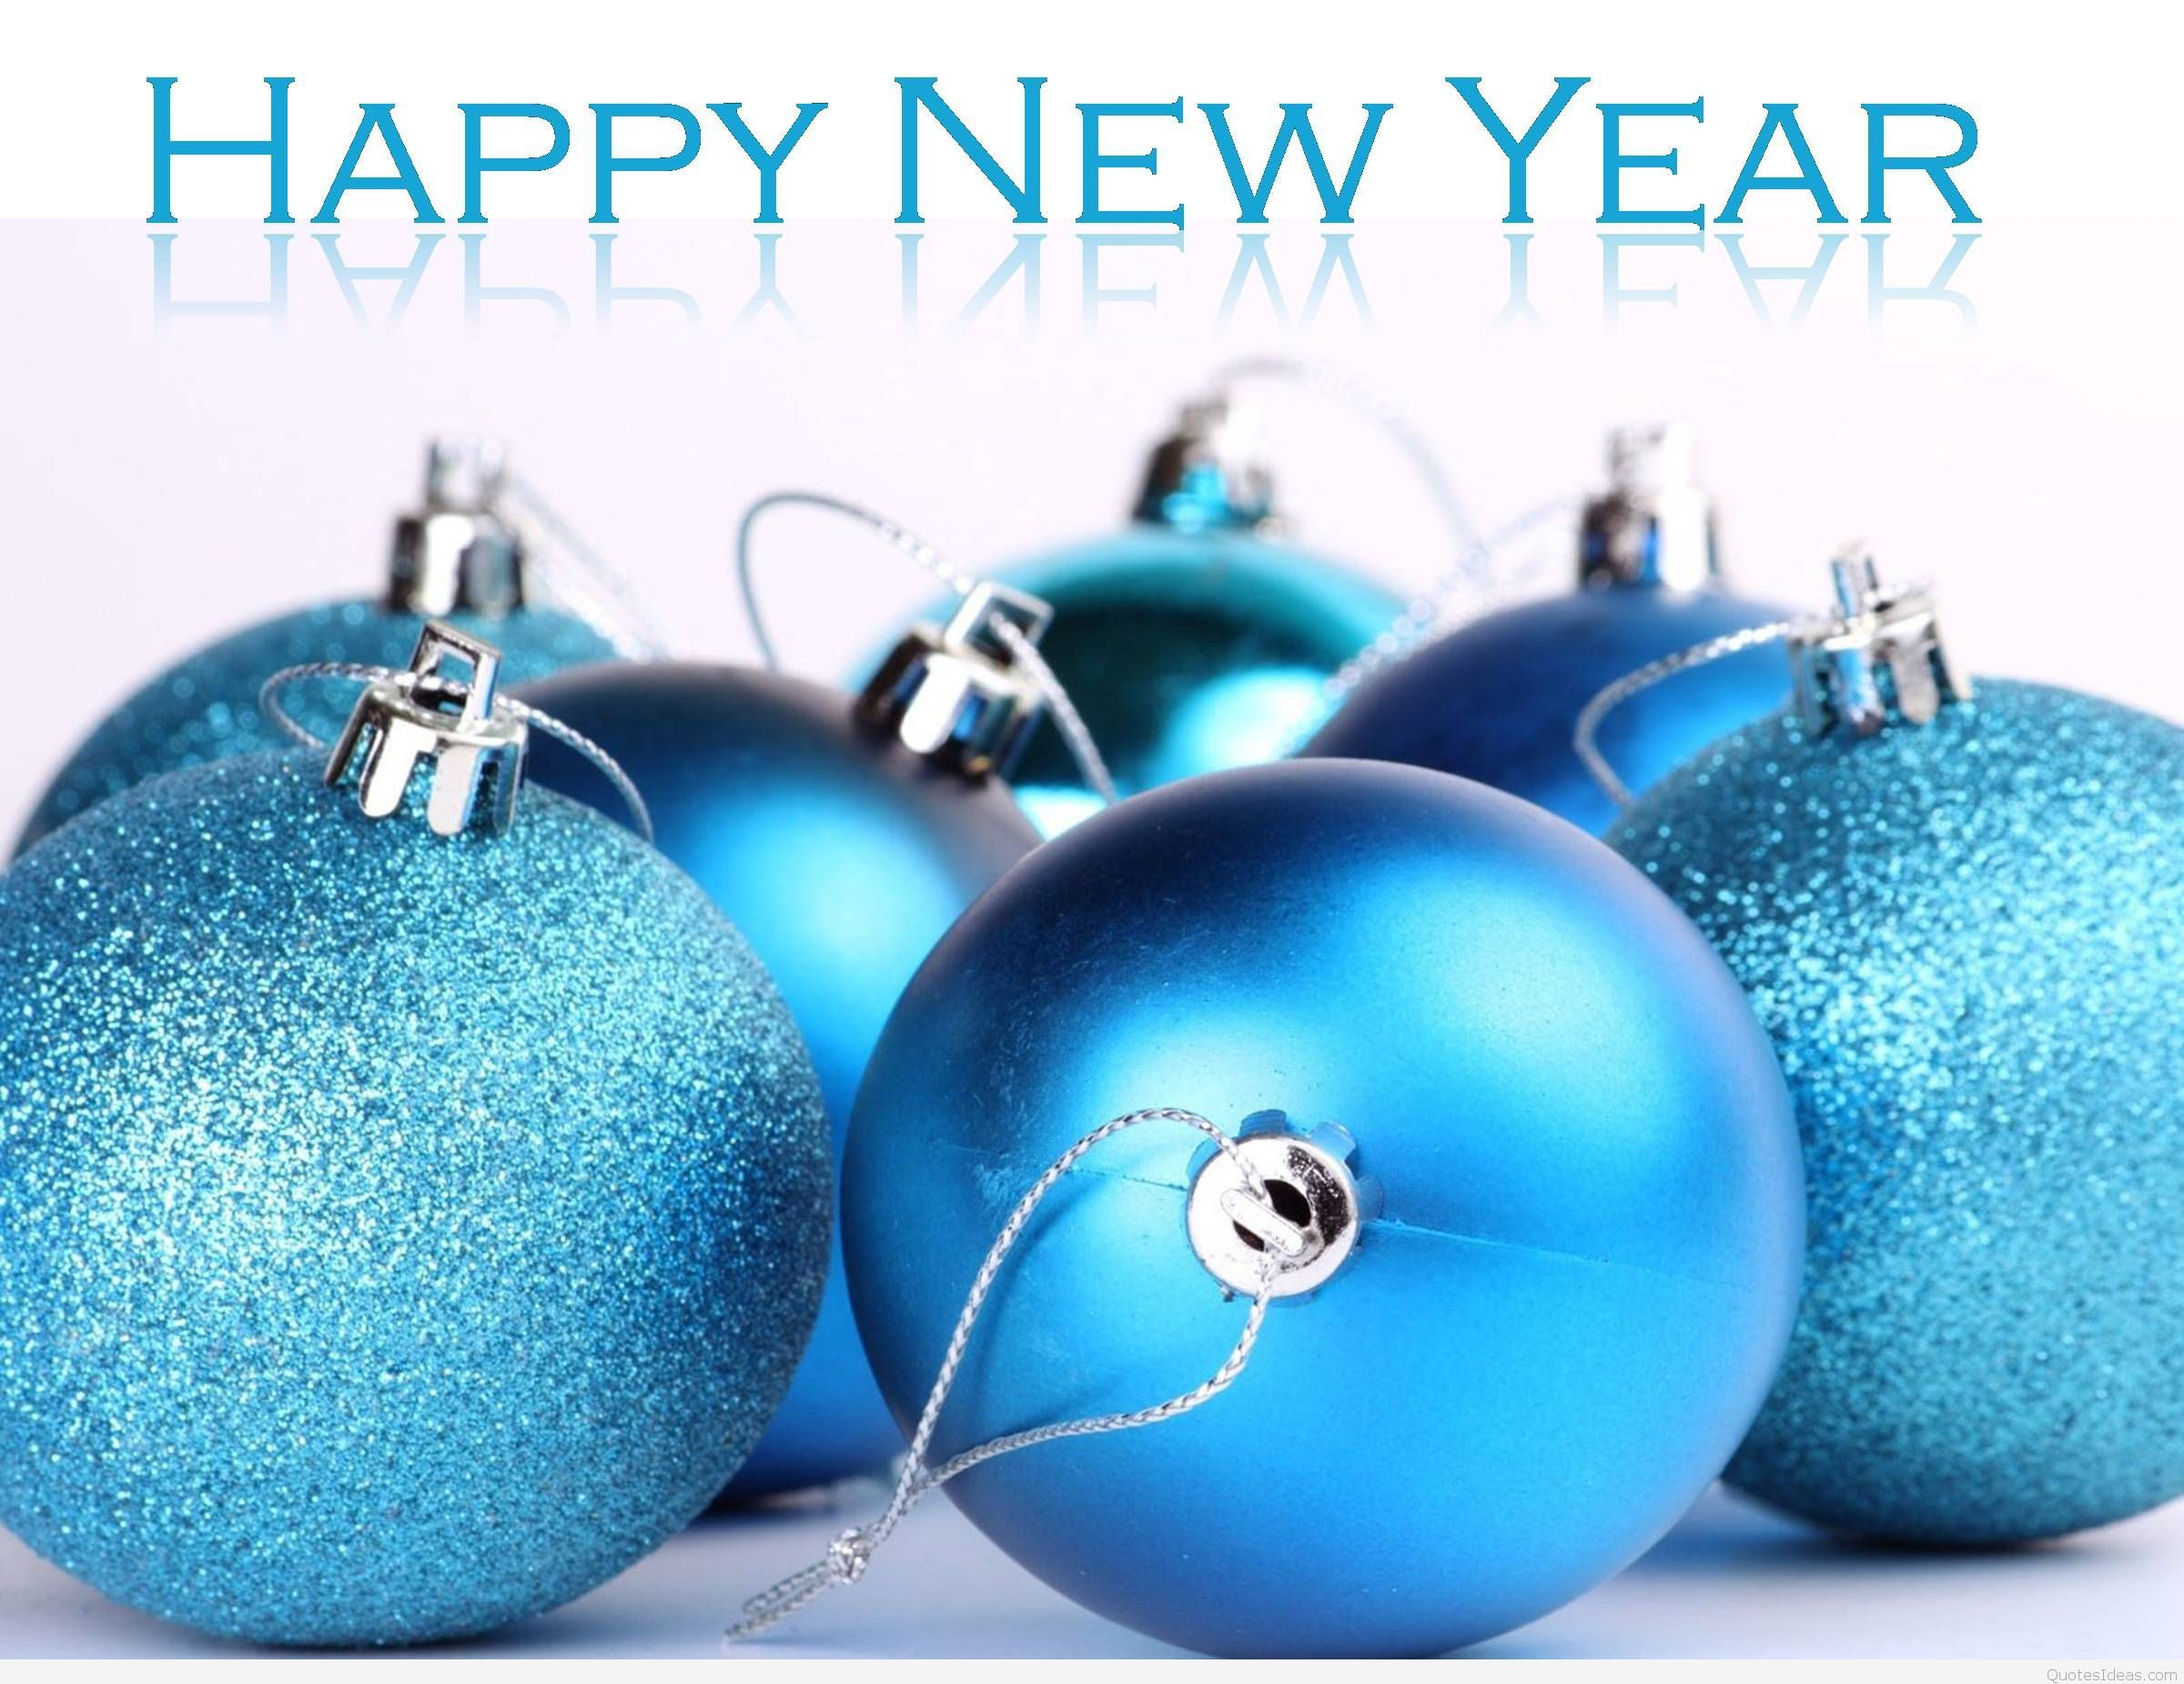 Happy New Year Awesome Globes 2016 hdefwallpaper